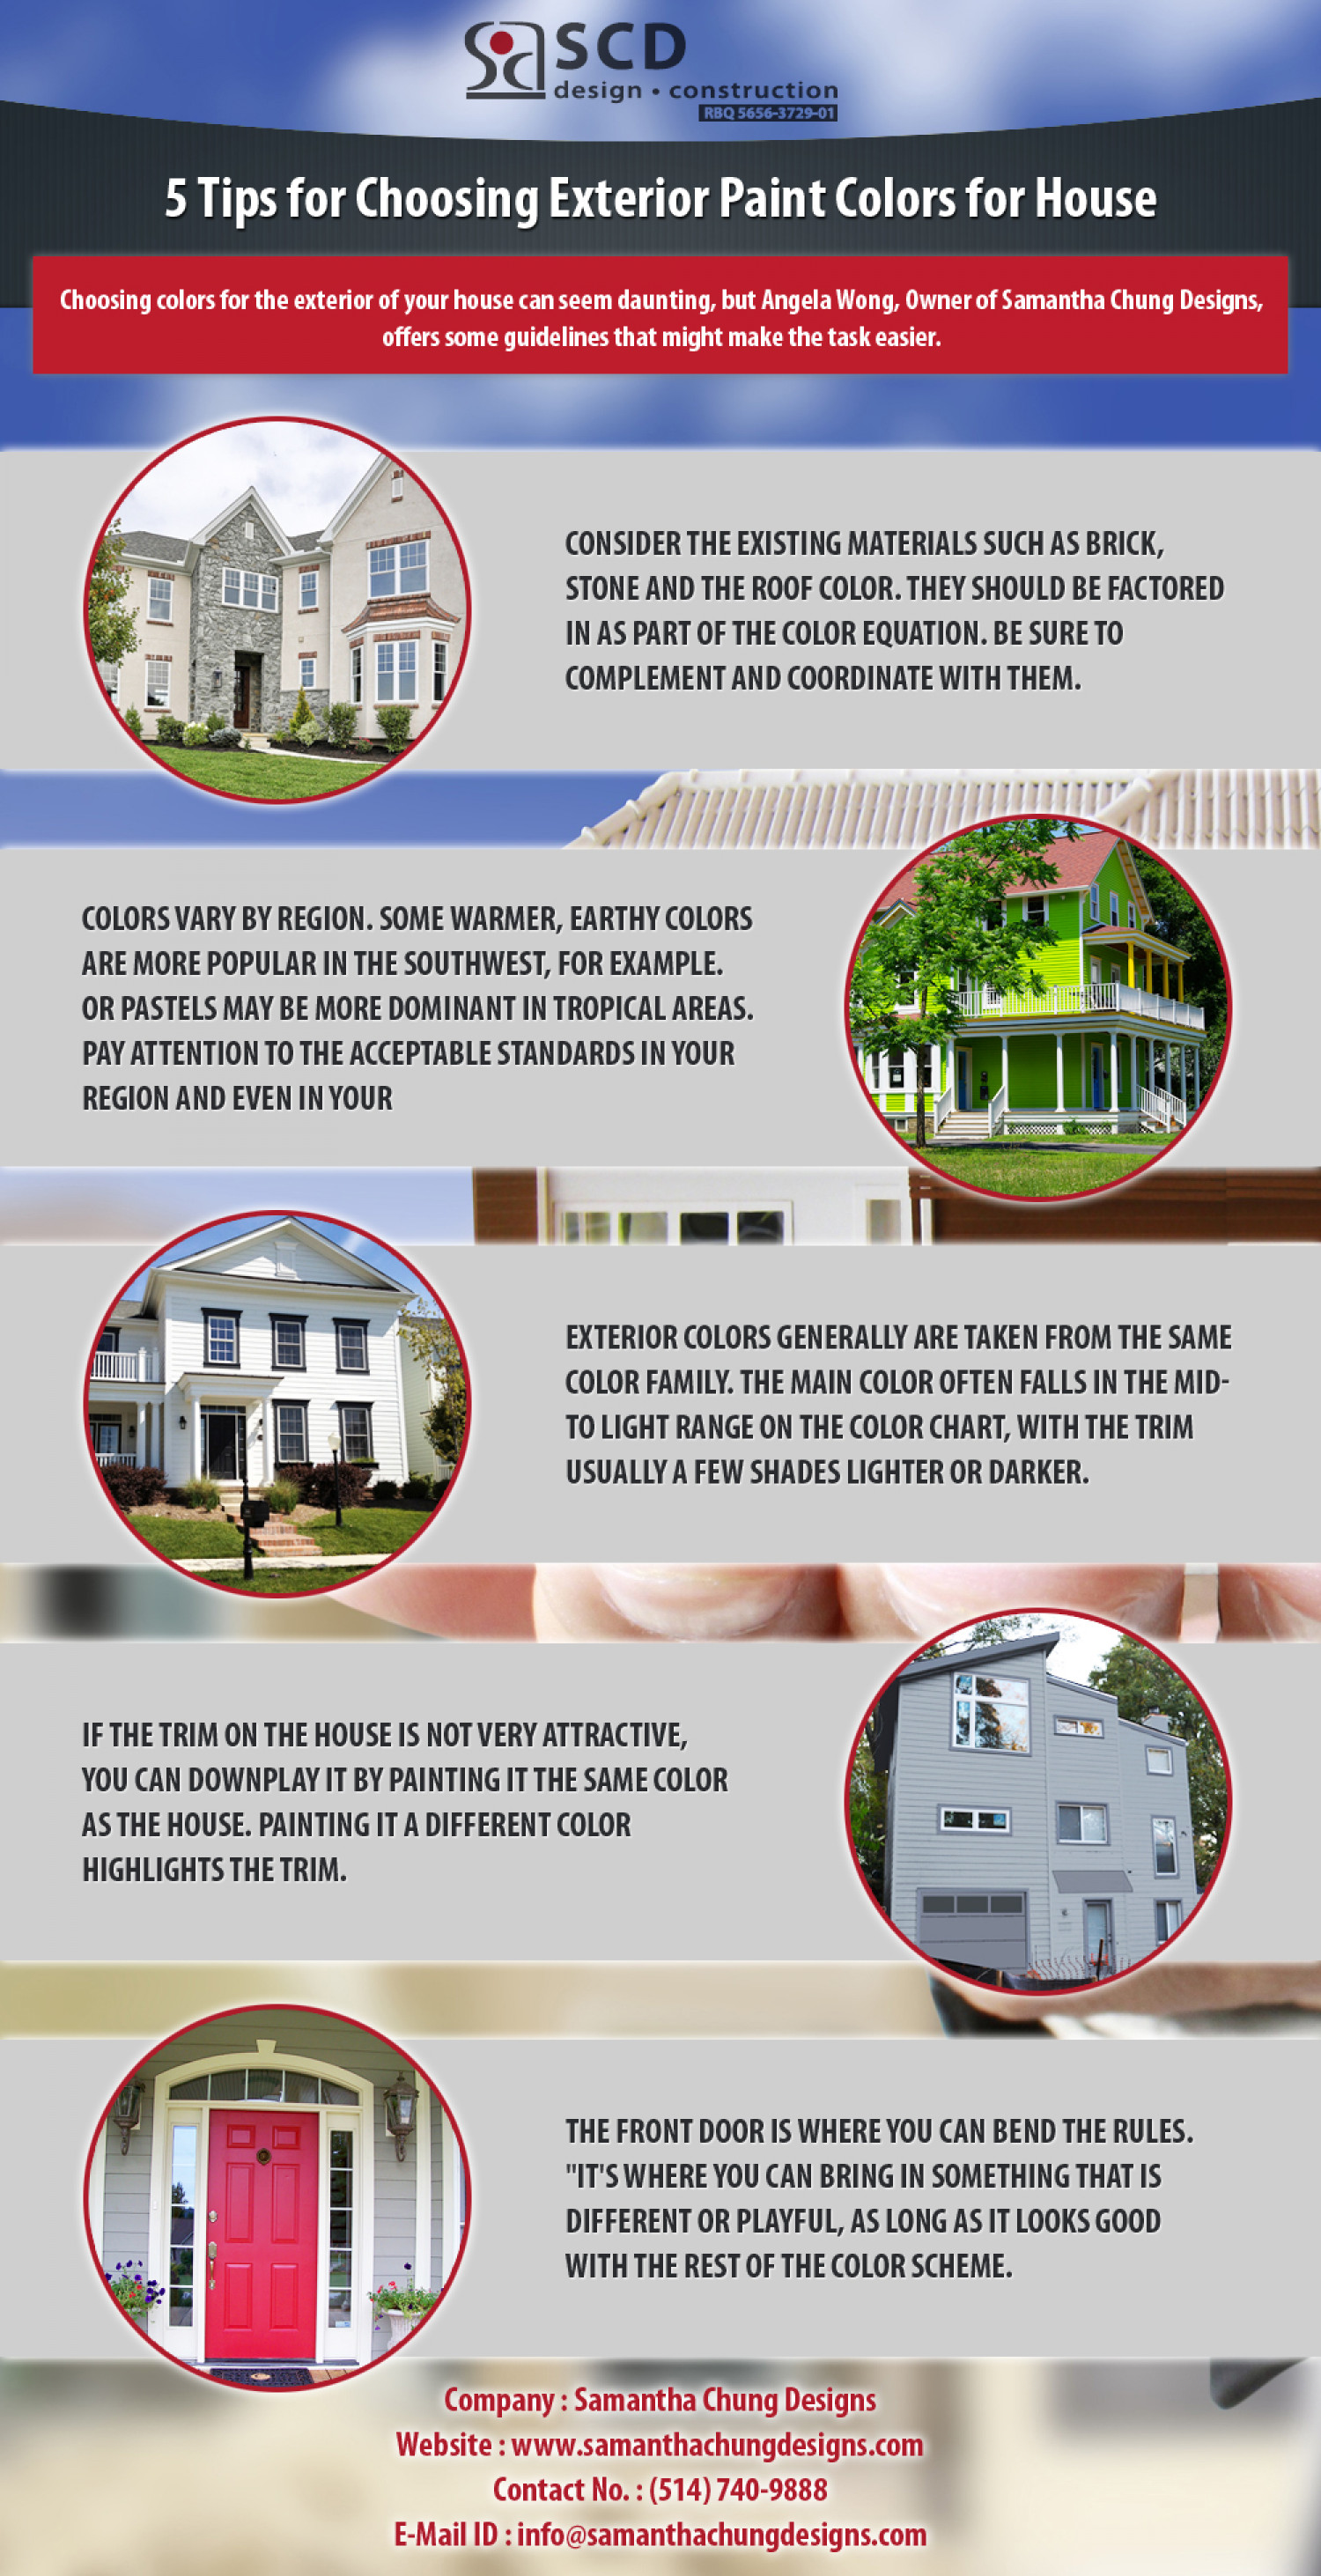 5 tips for choosing exterior paint colors for house - Selecting exterior paint colors concept ...